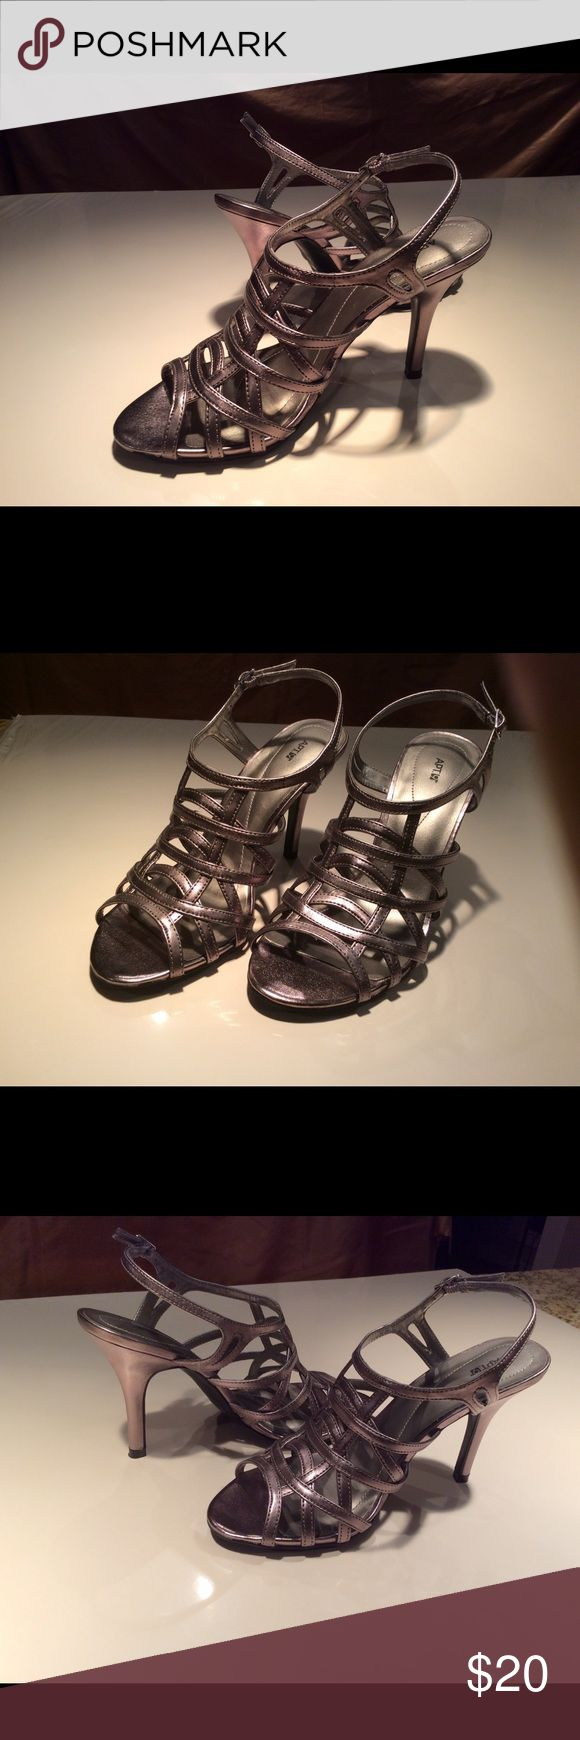 """Apt 9 Pewter metallic strappy high heel shoes Apt 9 """"Paytin"""" pewter metallic strappy dress shoes. 4"""" heel. like new, worn once. Sz. 7.5 true to size Apt 9 Shoes Heels"""